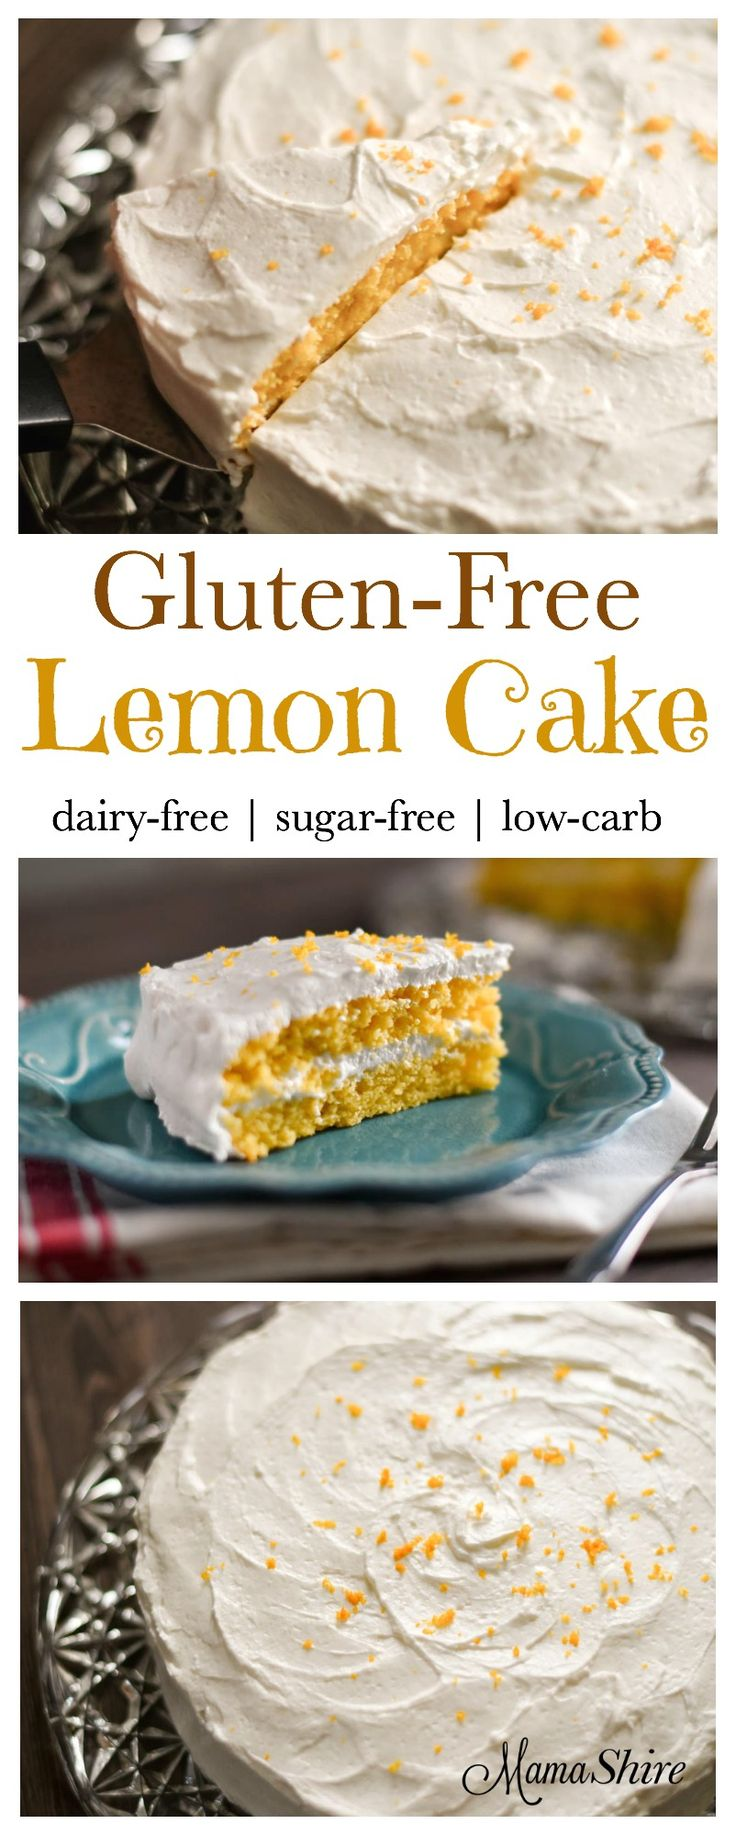 Gluten-Free Lemon Cake made with almond and coconut flour. It's dairy and sugar free. Trim Healthy Mamas this is an S.